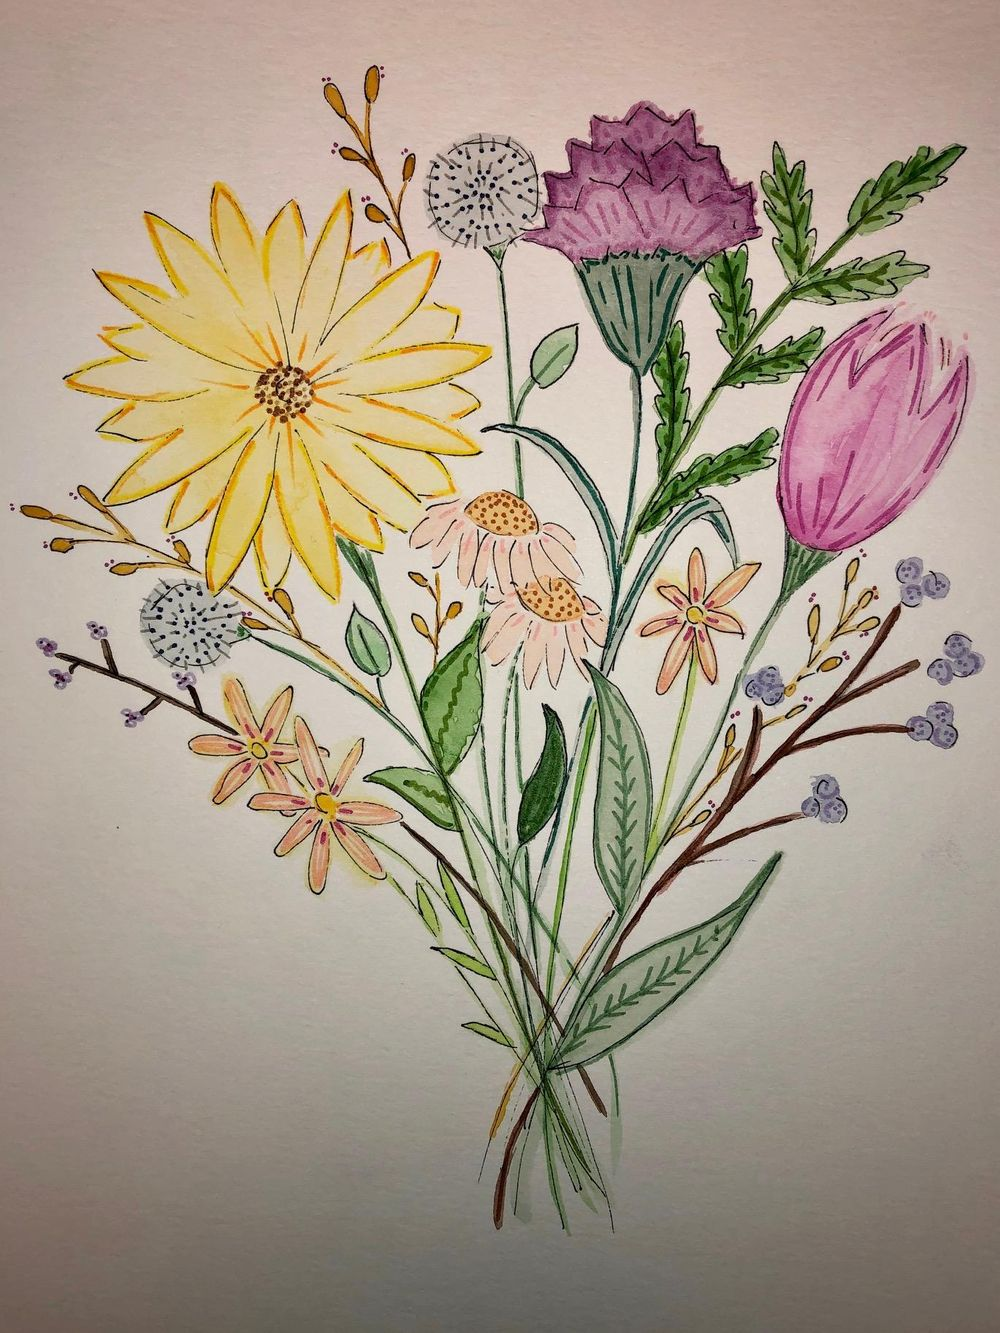 Spring Florals - image 1 - student project